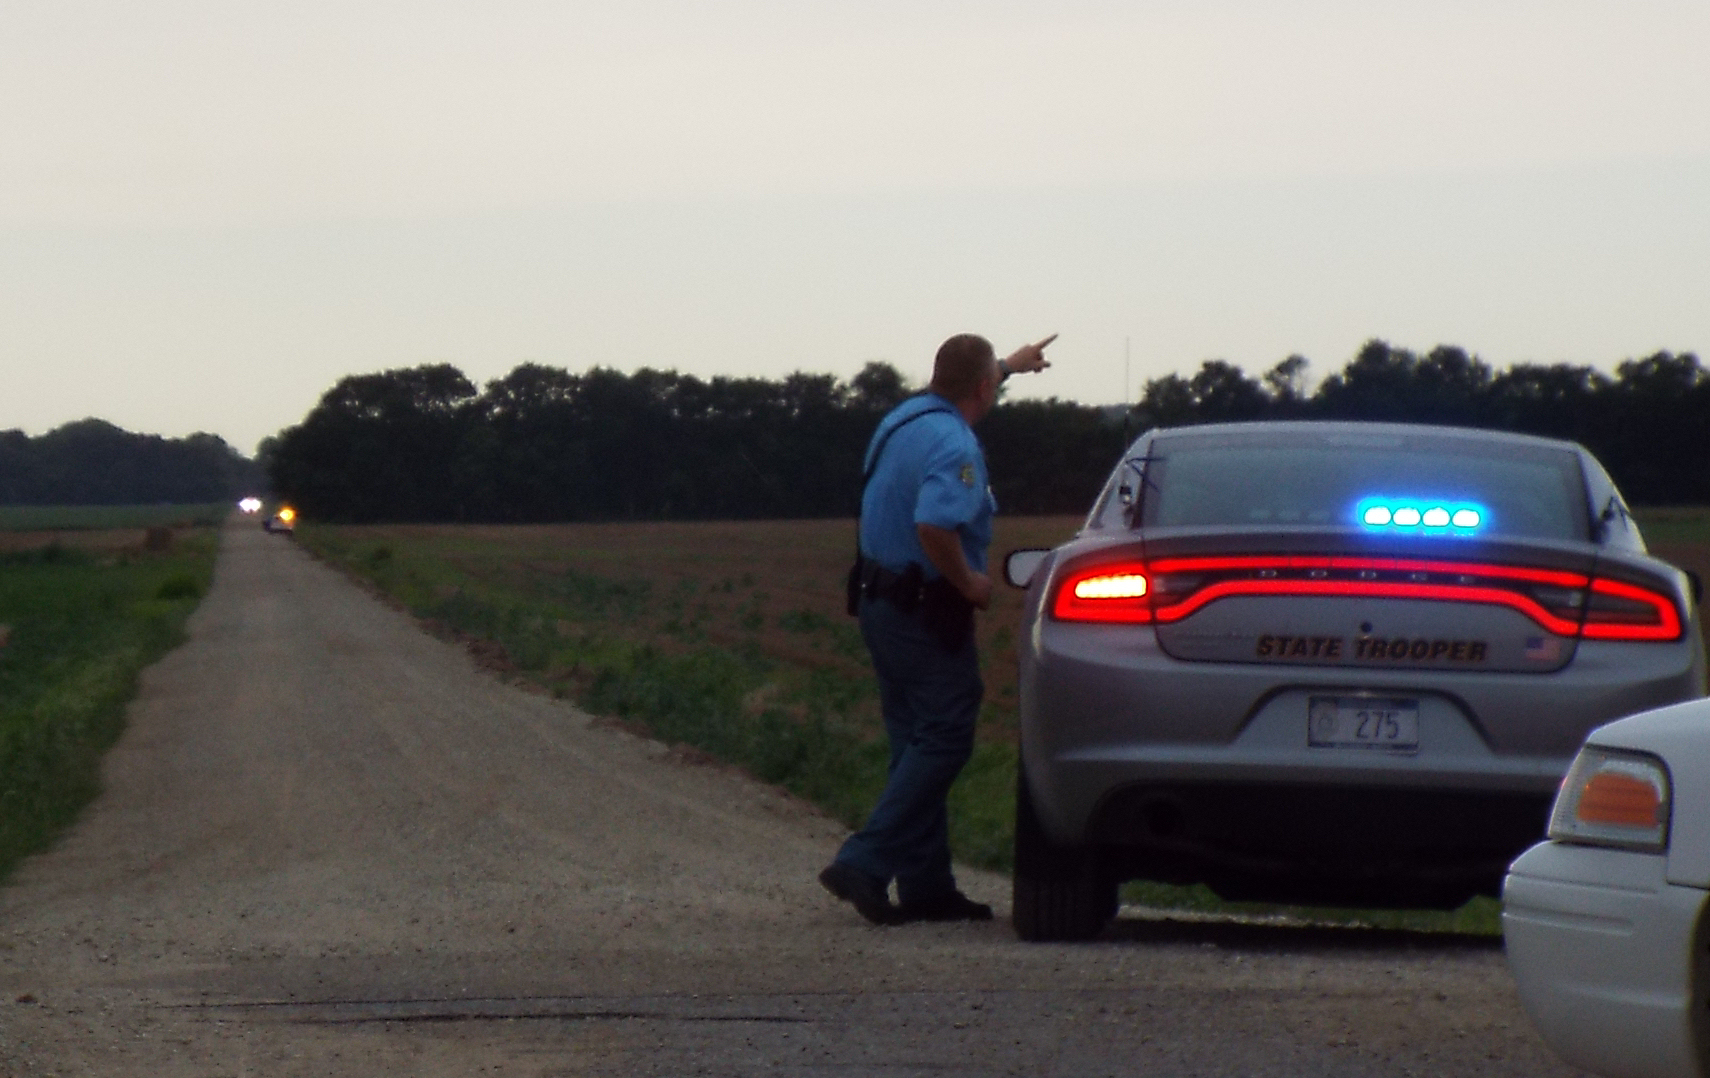 Saline County Sheriff Investigator Matt Fischer briefs a state trooper on the situation as the trooper arrives.